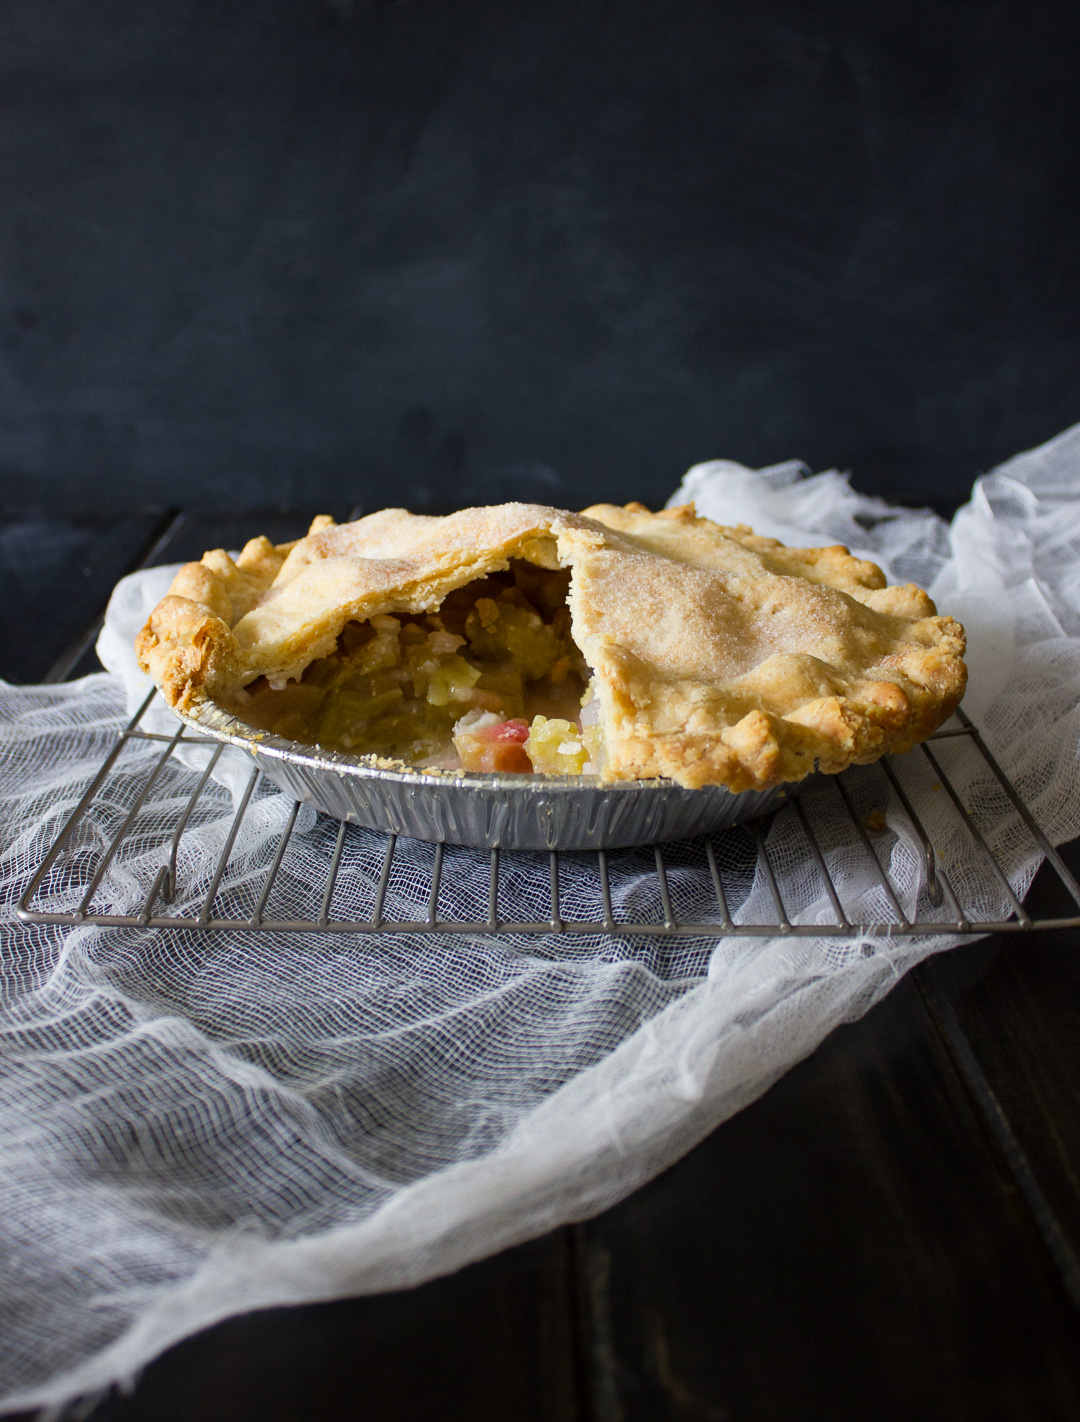 Sweet and tart, this classic recipe for Rhubarb Pie is a must-try! - I Say Nomato